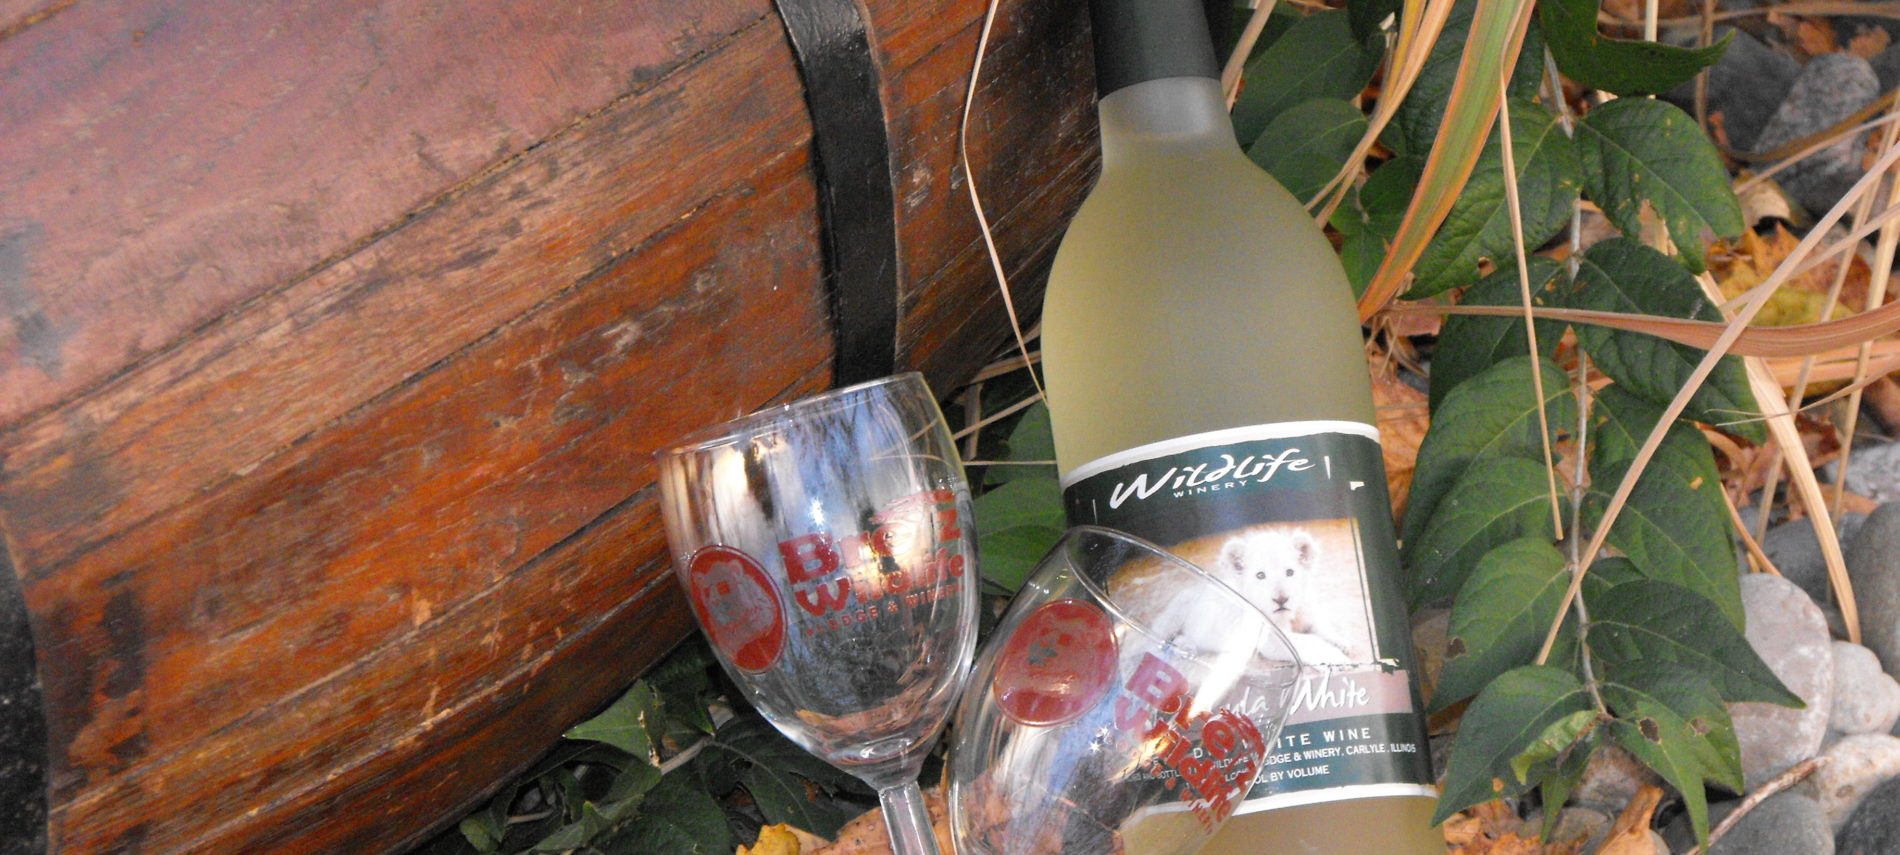 Bottle of white wine with glass sitting by a wooden trunk in leaves.